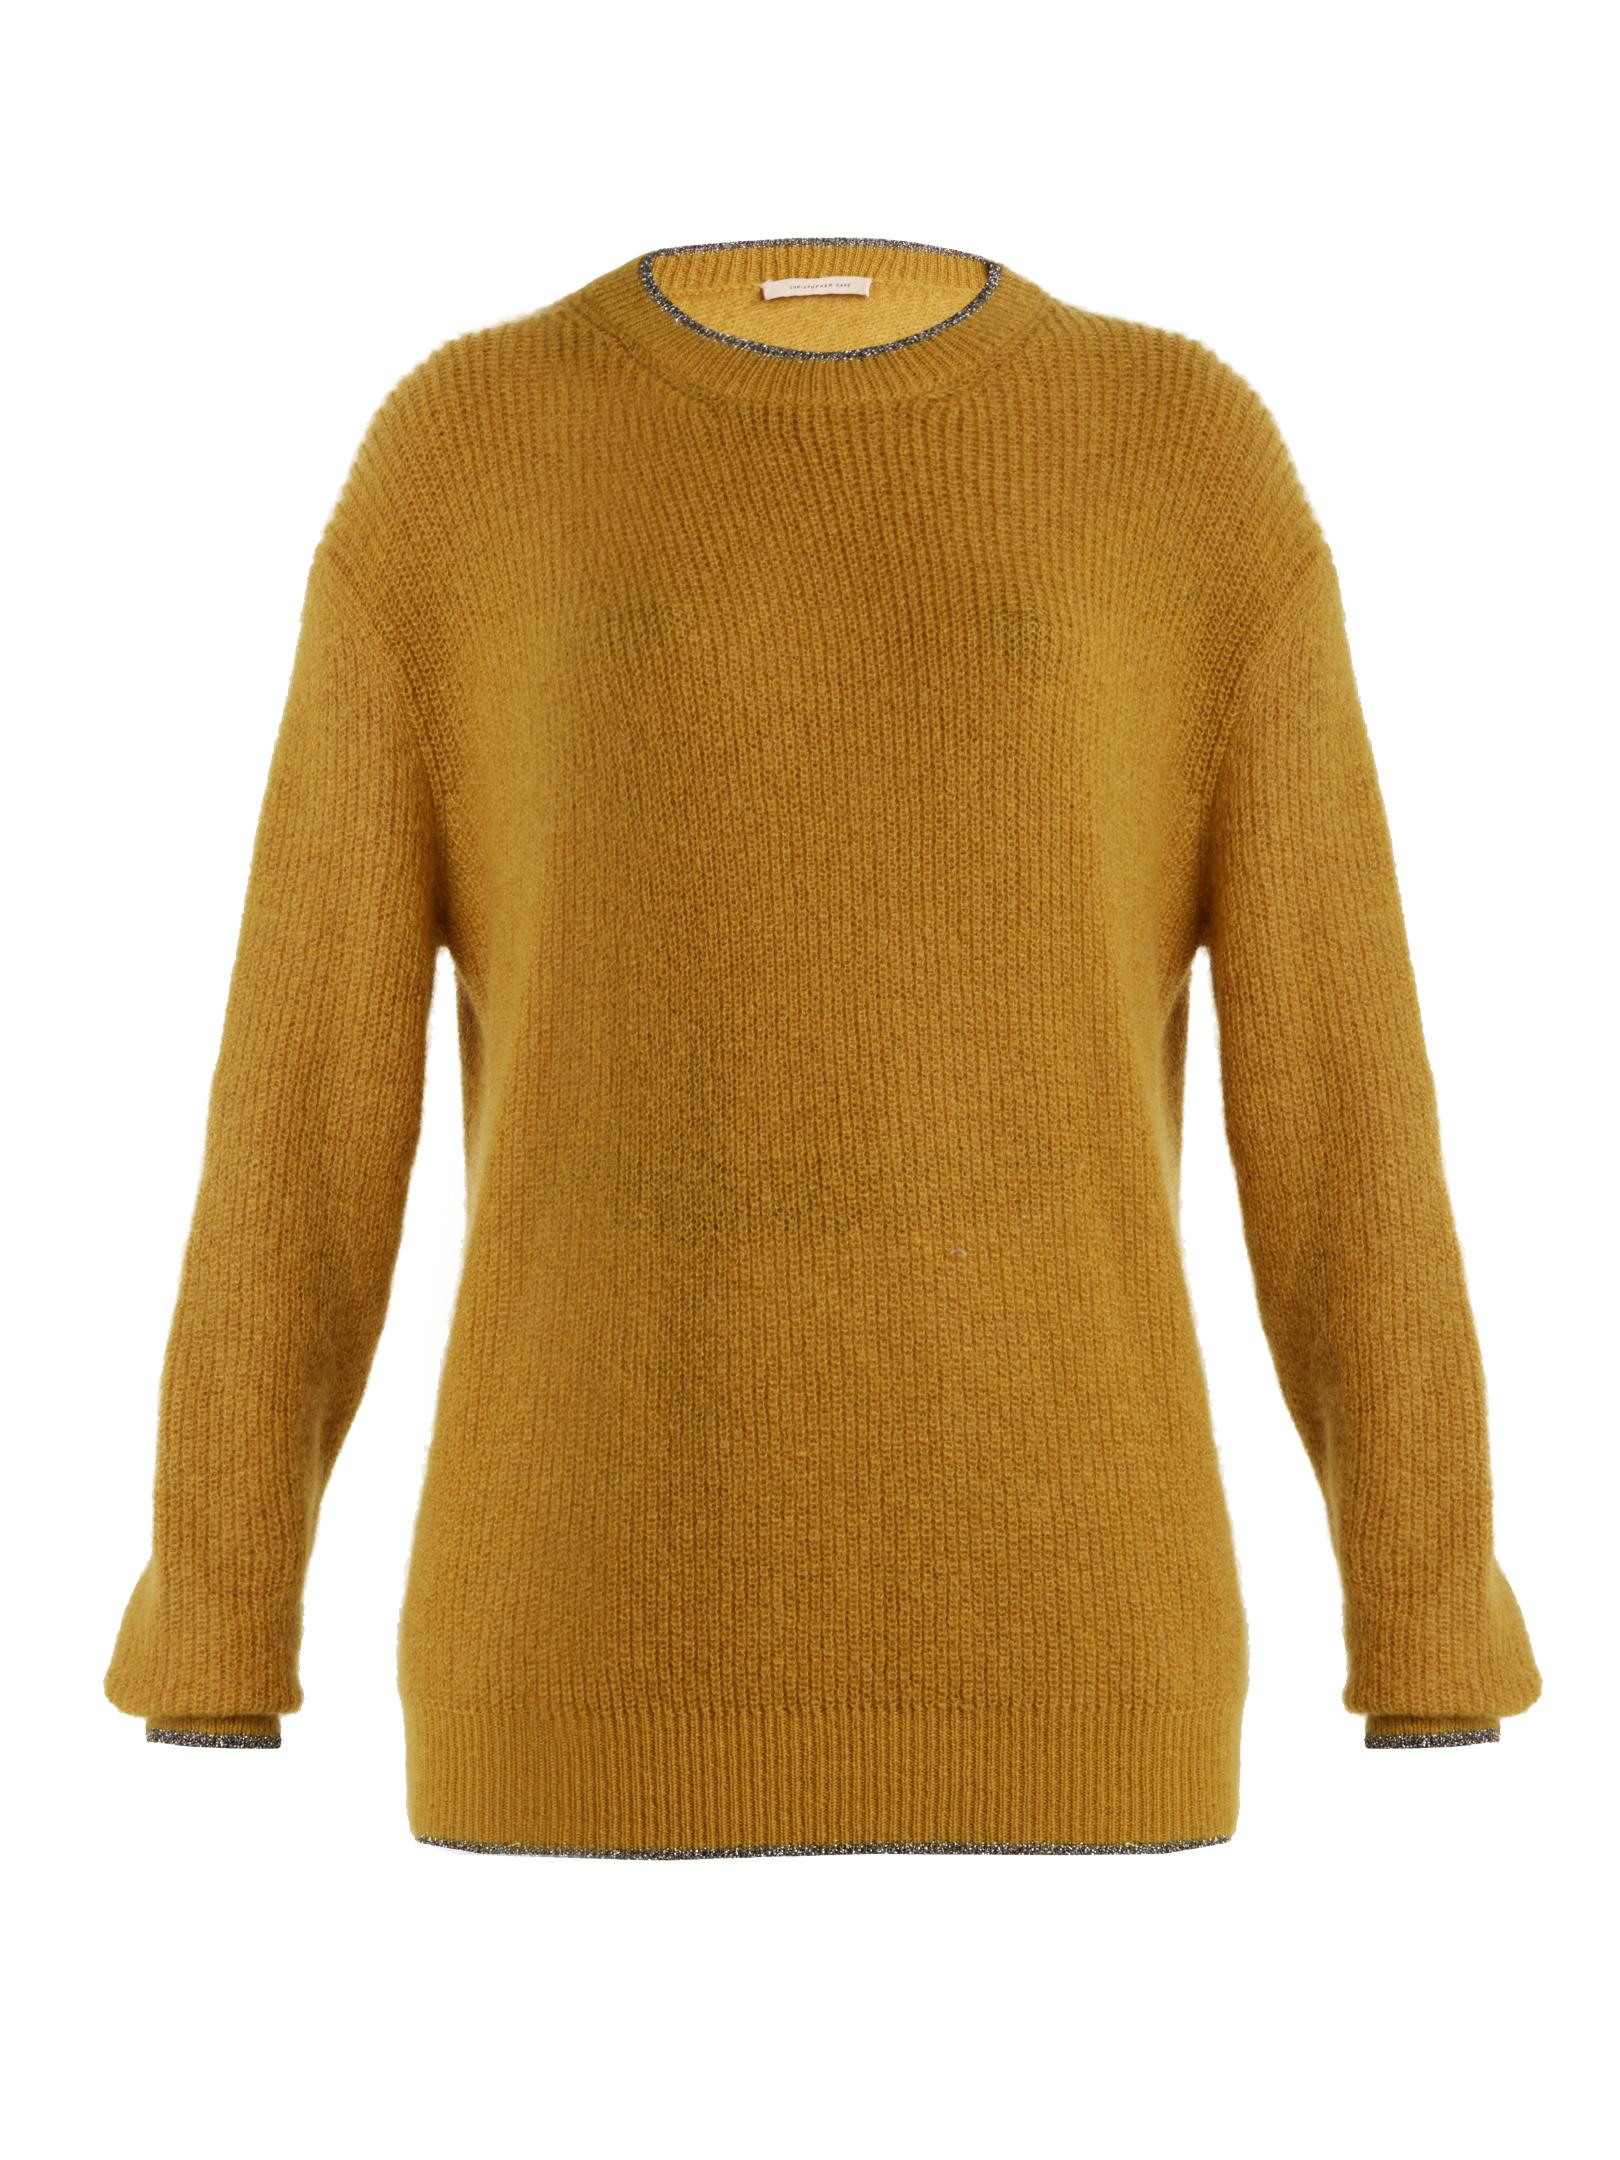 Christopher kane Contrast-trim Round-neck Sweater in Yellow | Lyst